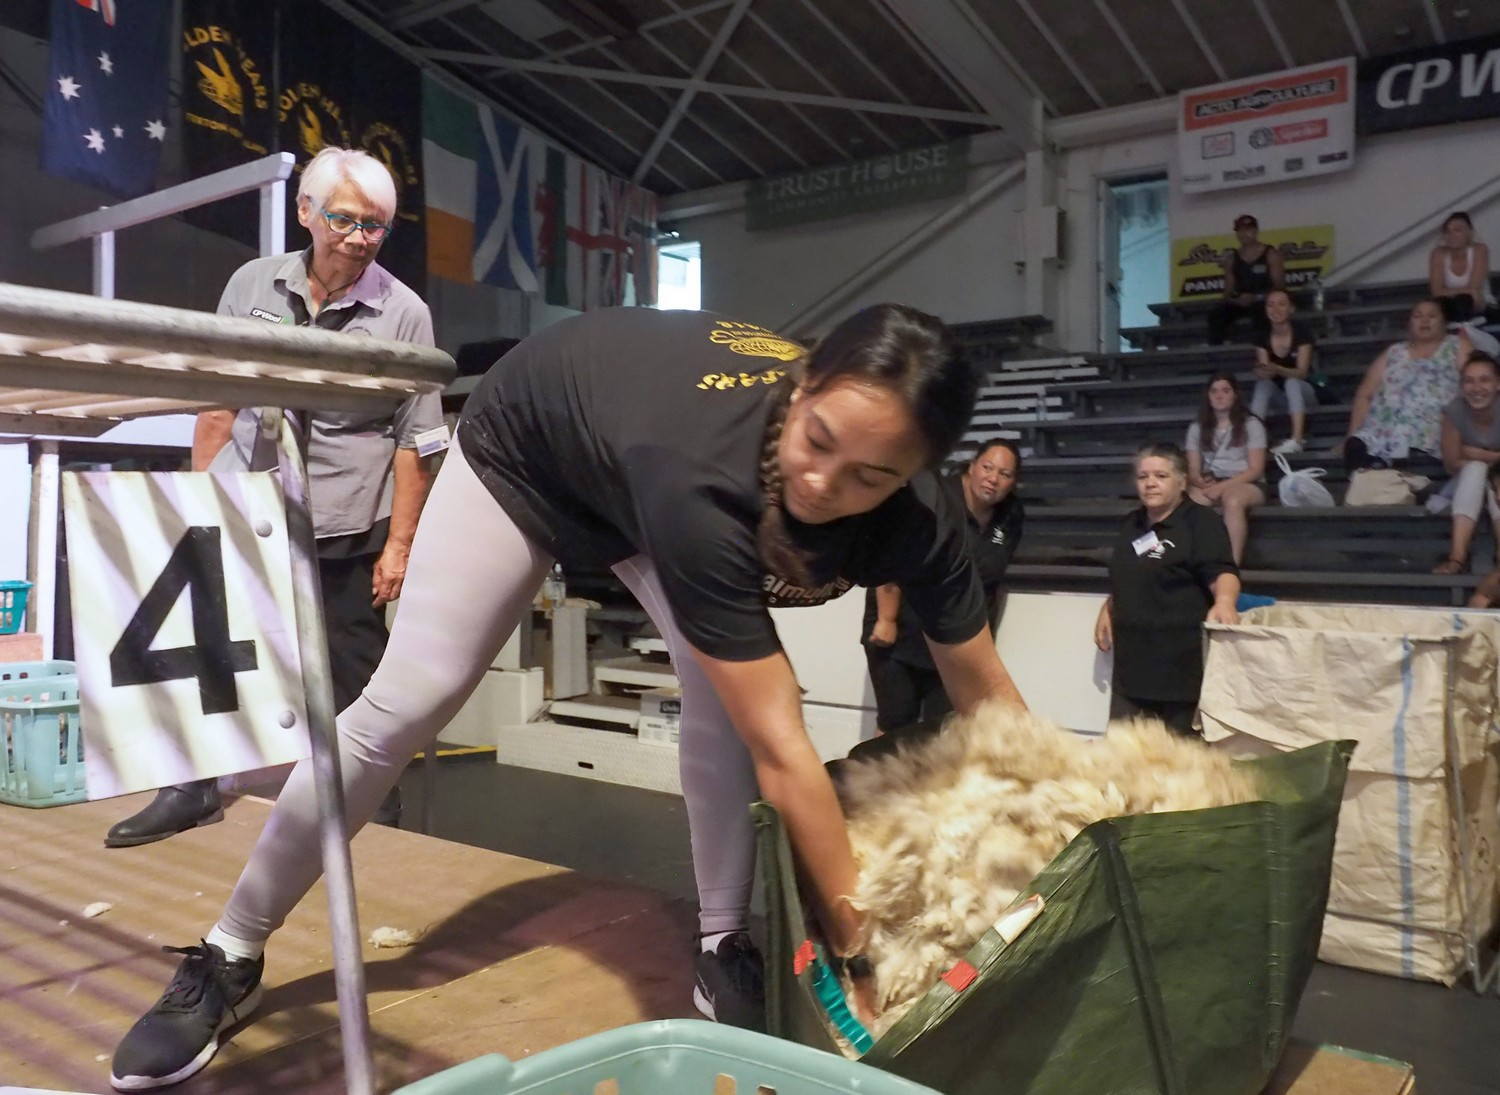 """Heaven Kemp, of Gisborne, on her way to her """"shock"""" win in the Novice woolhandling final on the opening day of the 58thGolden Shears in Masterton today. PHOTO/Pete Nikolaison, Golden Shears Media Group."""